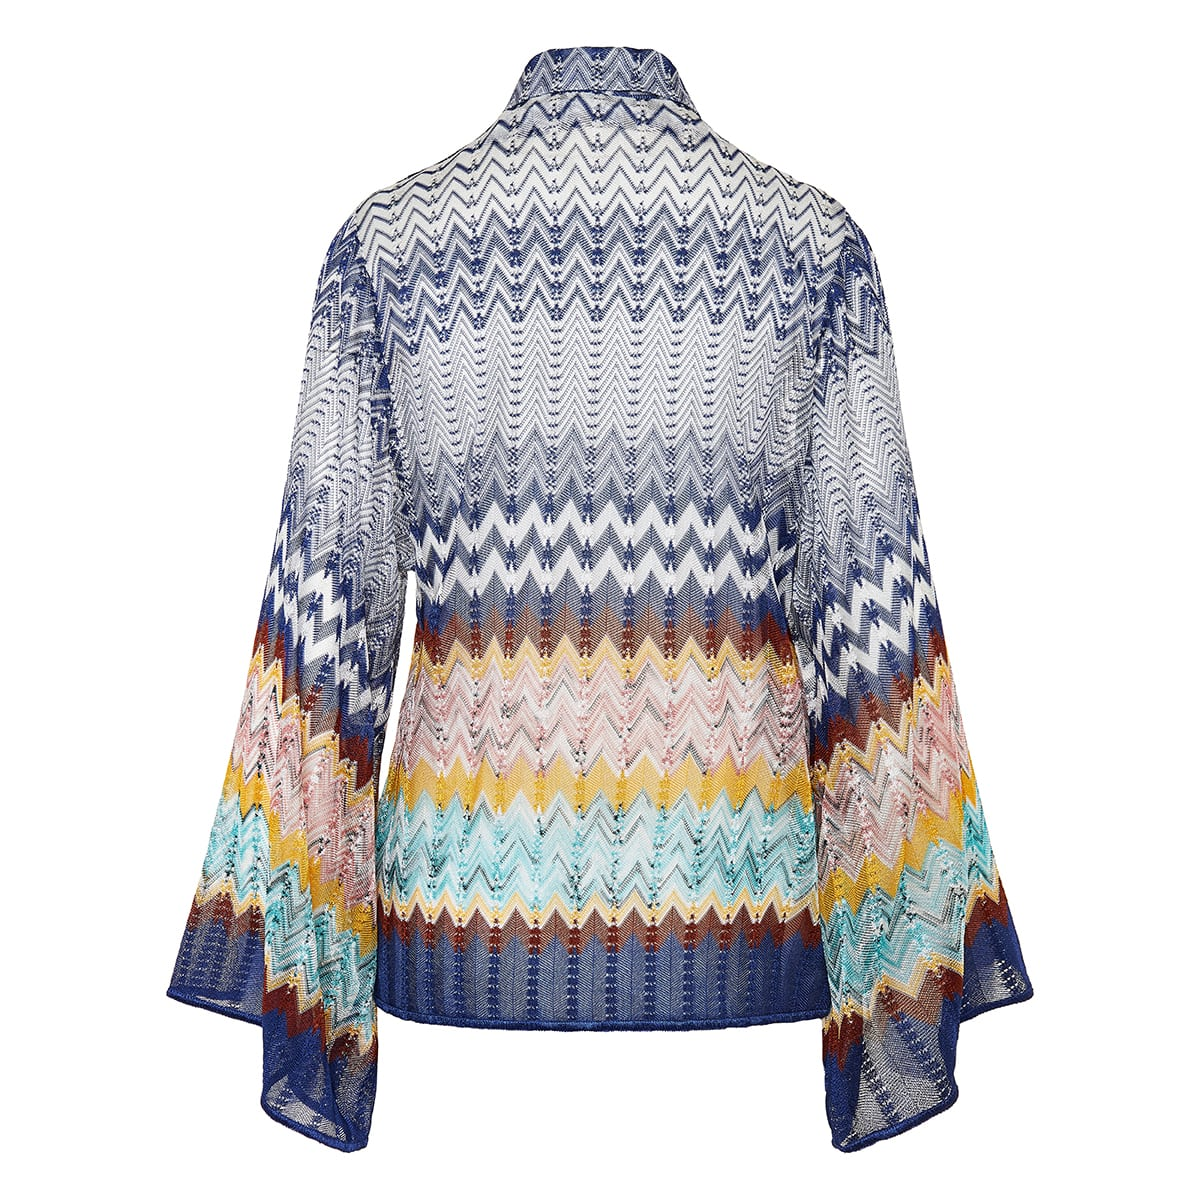 Patterned-knit shirt